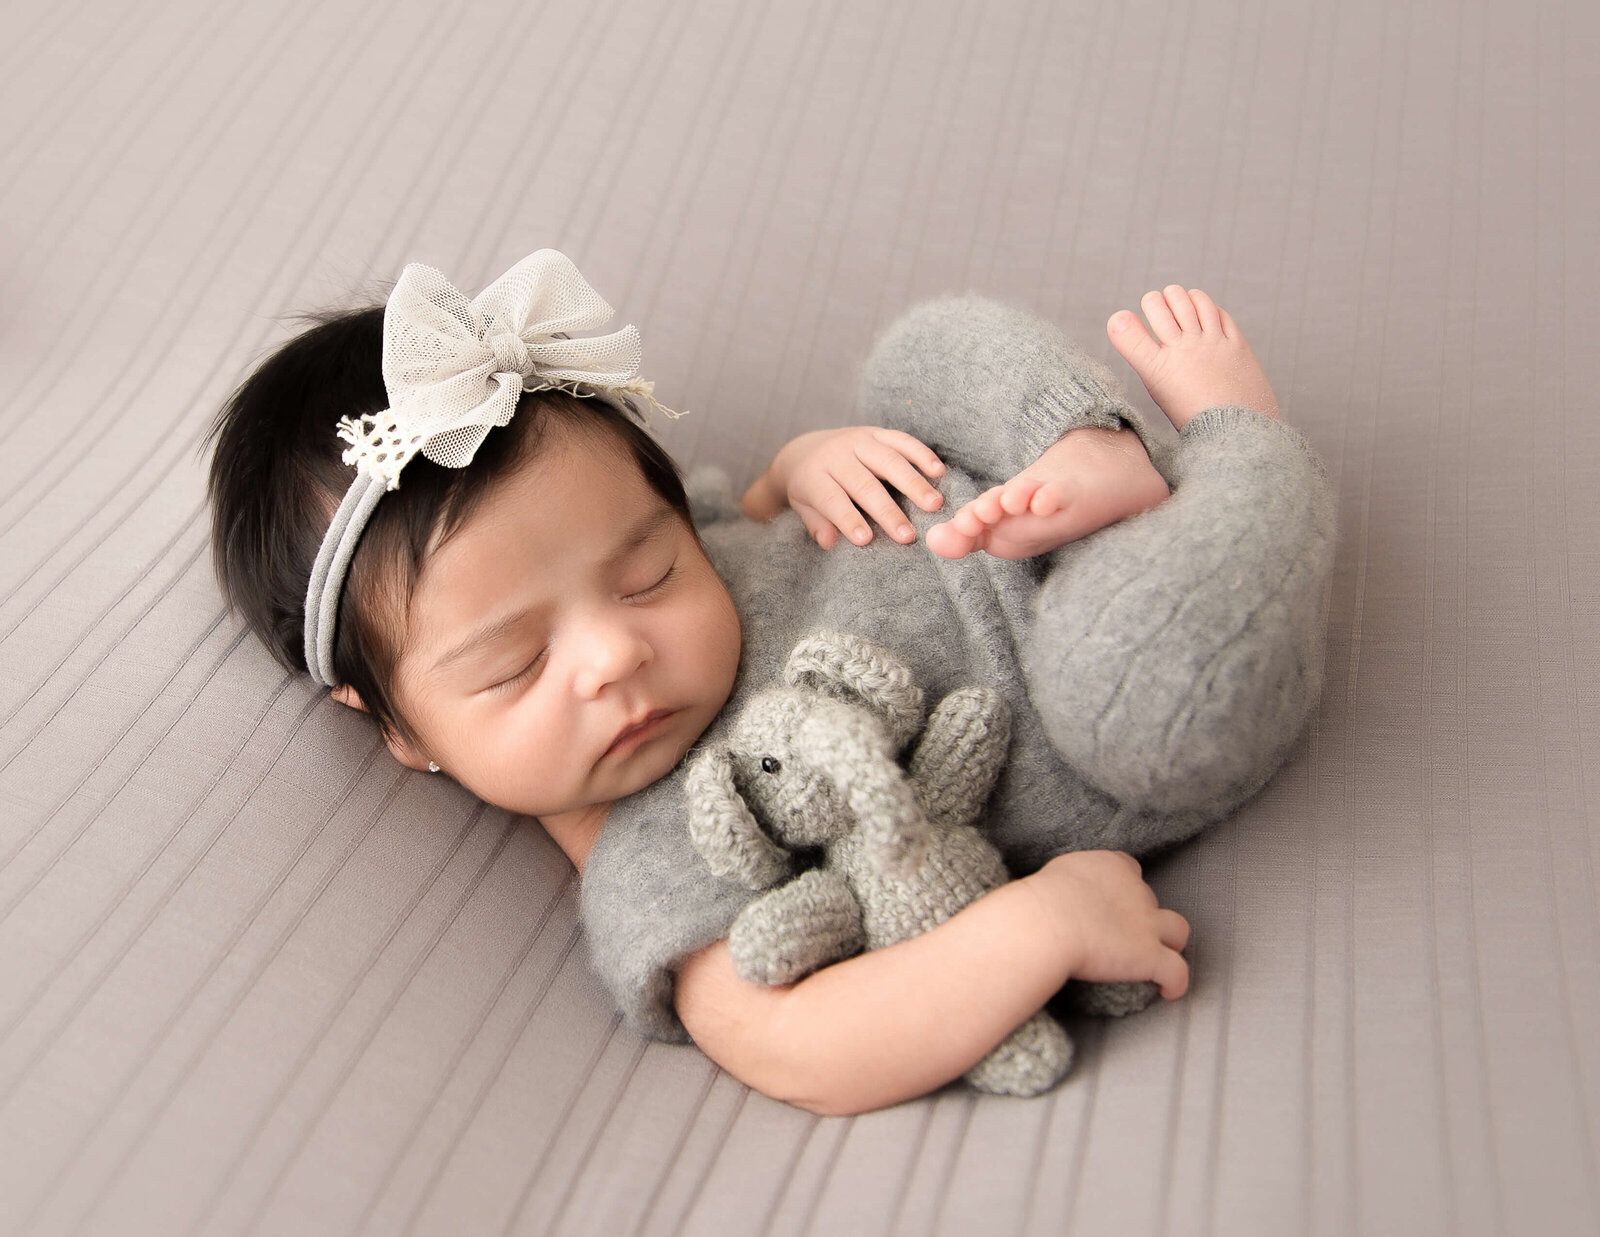 Sleeping newborn posed at our studio located in Rochester, NY.